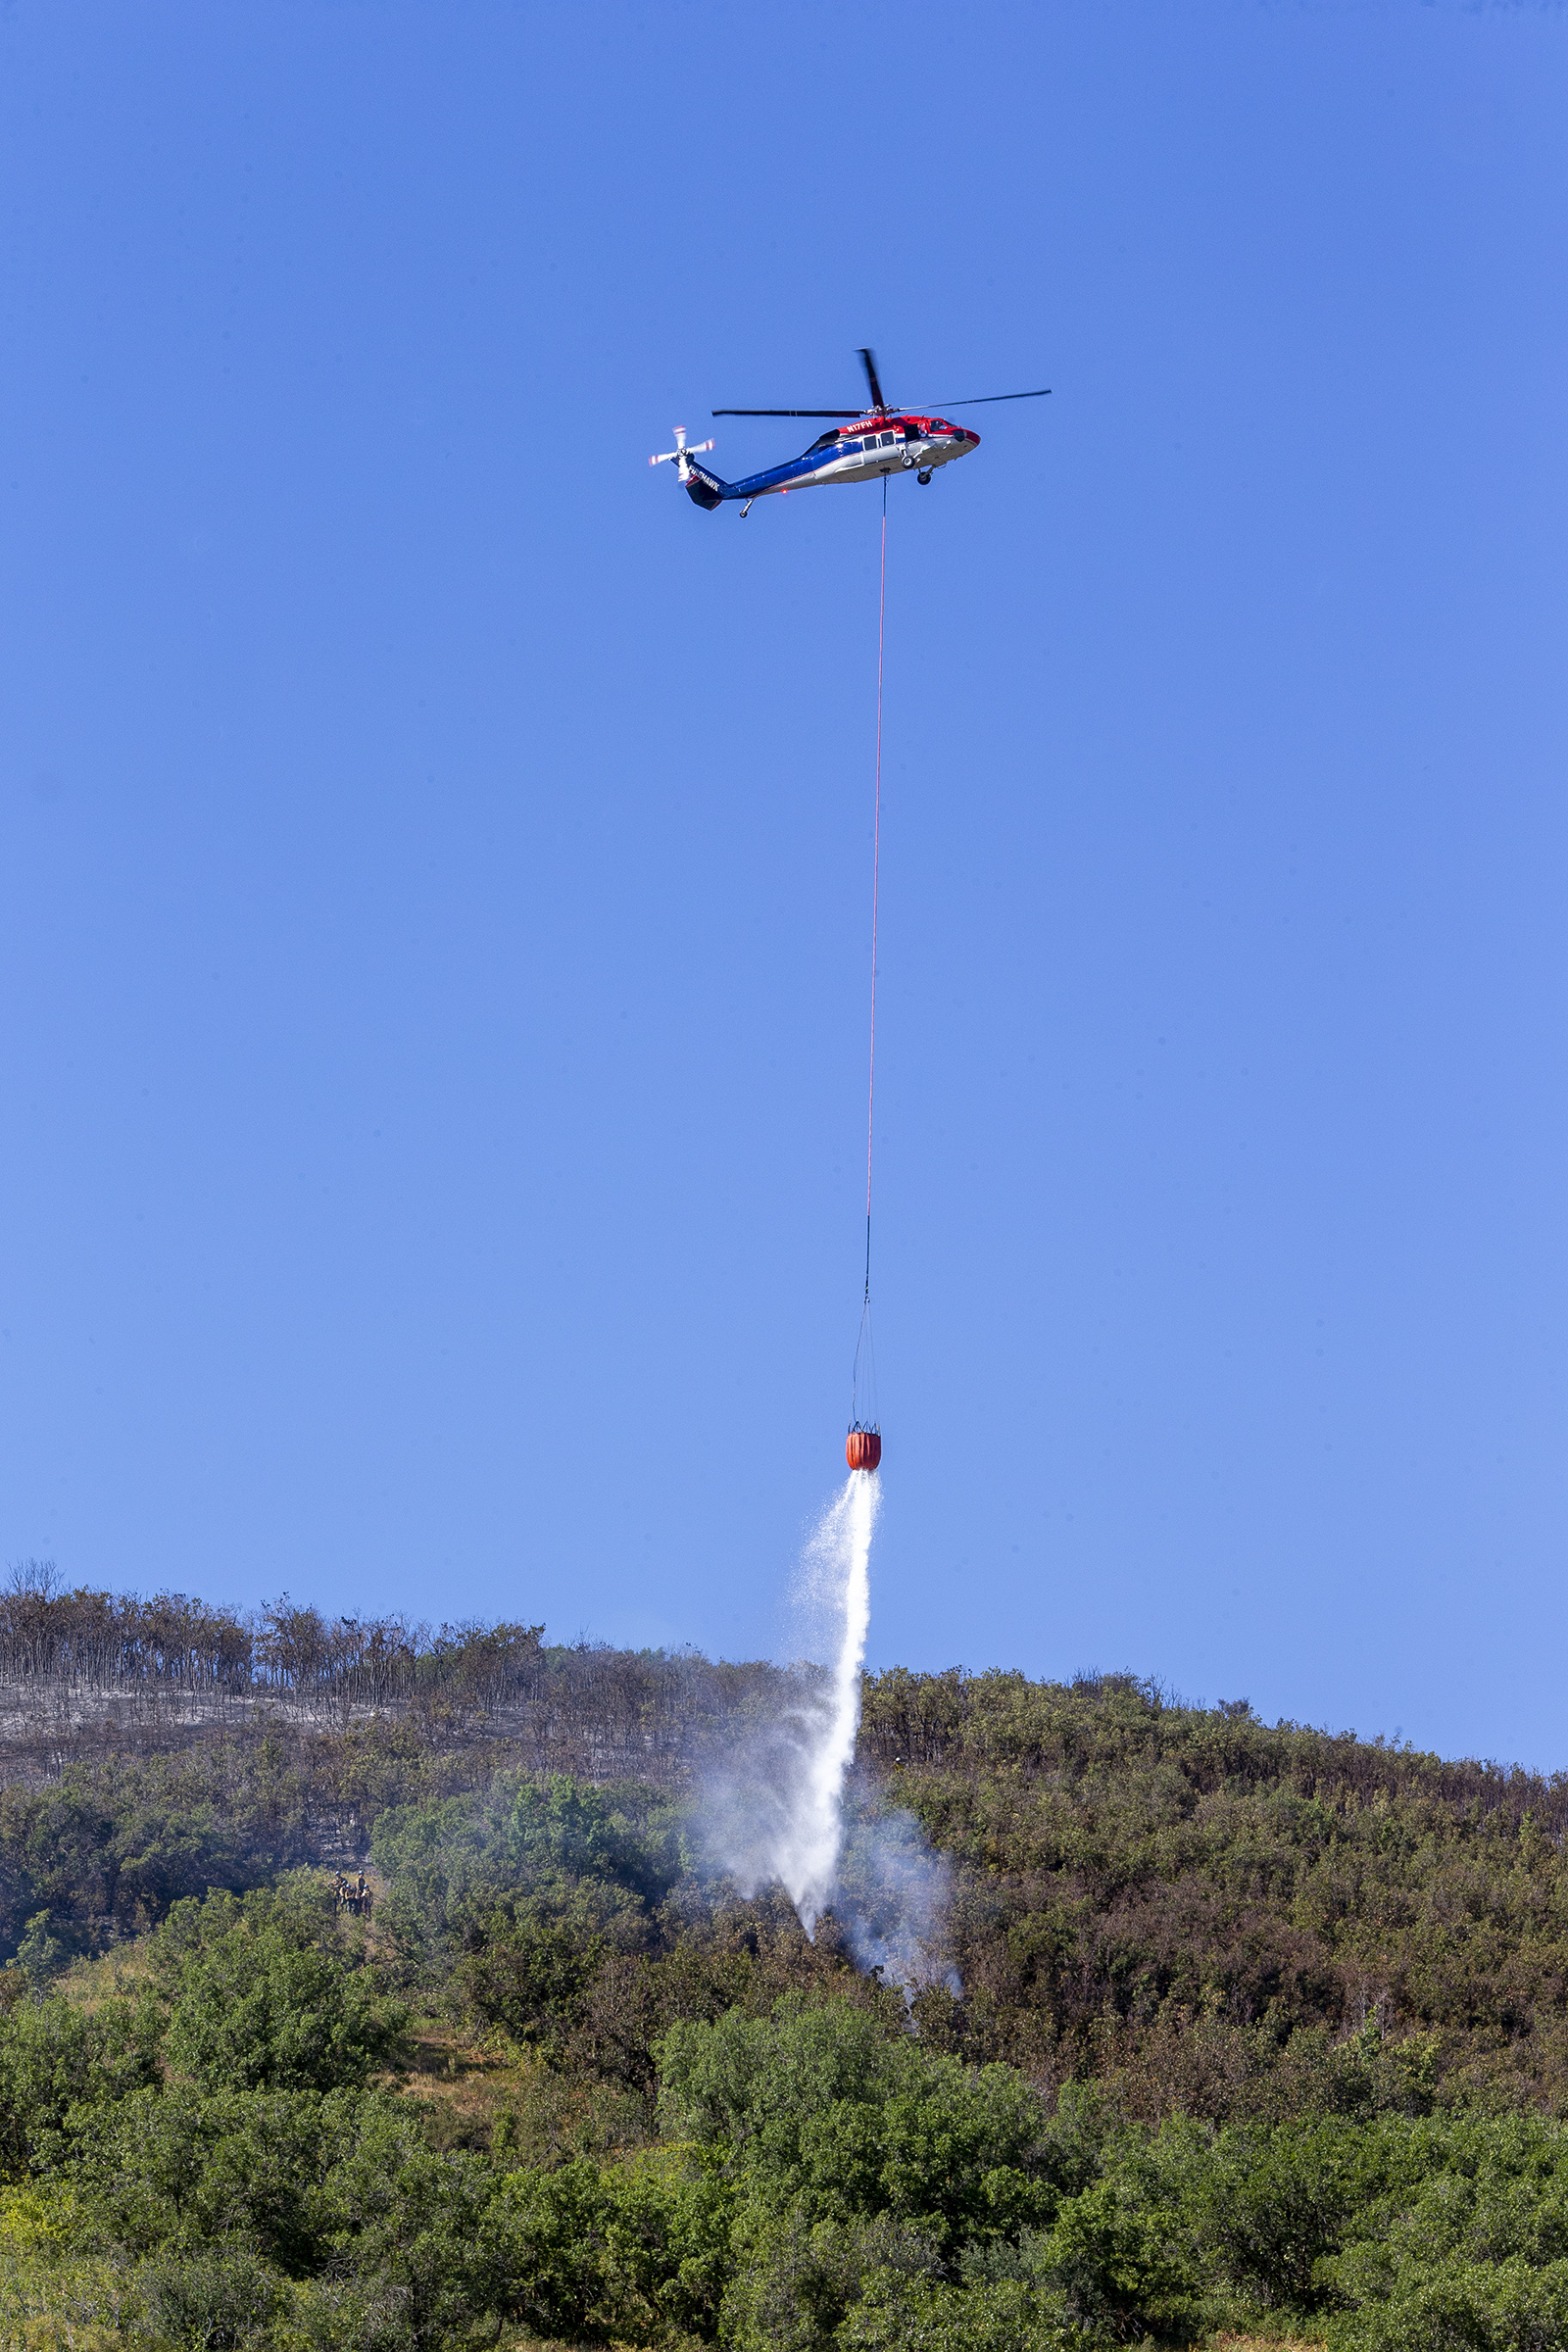 A helicopter drops water on a small smoke plume as firefighters battle a fire in Parleys Canyon east of Salt Lake City on Friday, Aug. 7, 2020.